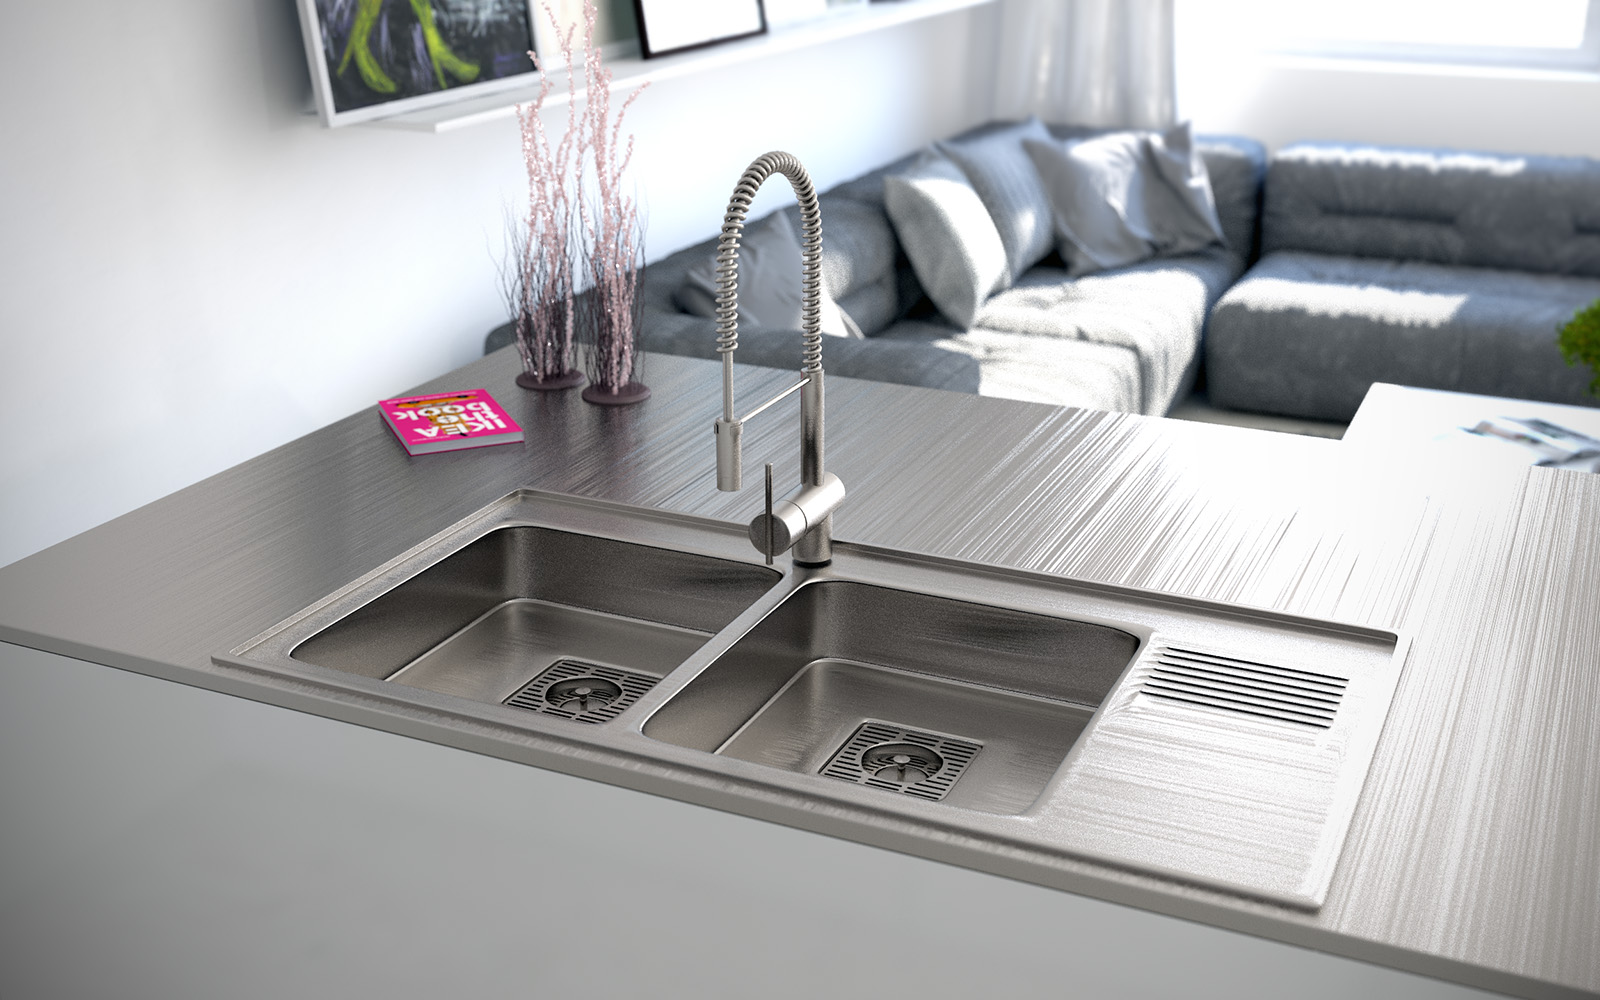 Stainless Steel Double Sink Stainless Steel Double Sink Interior Design Ideas